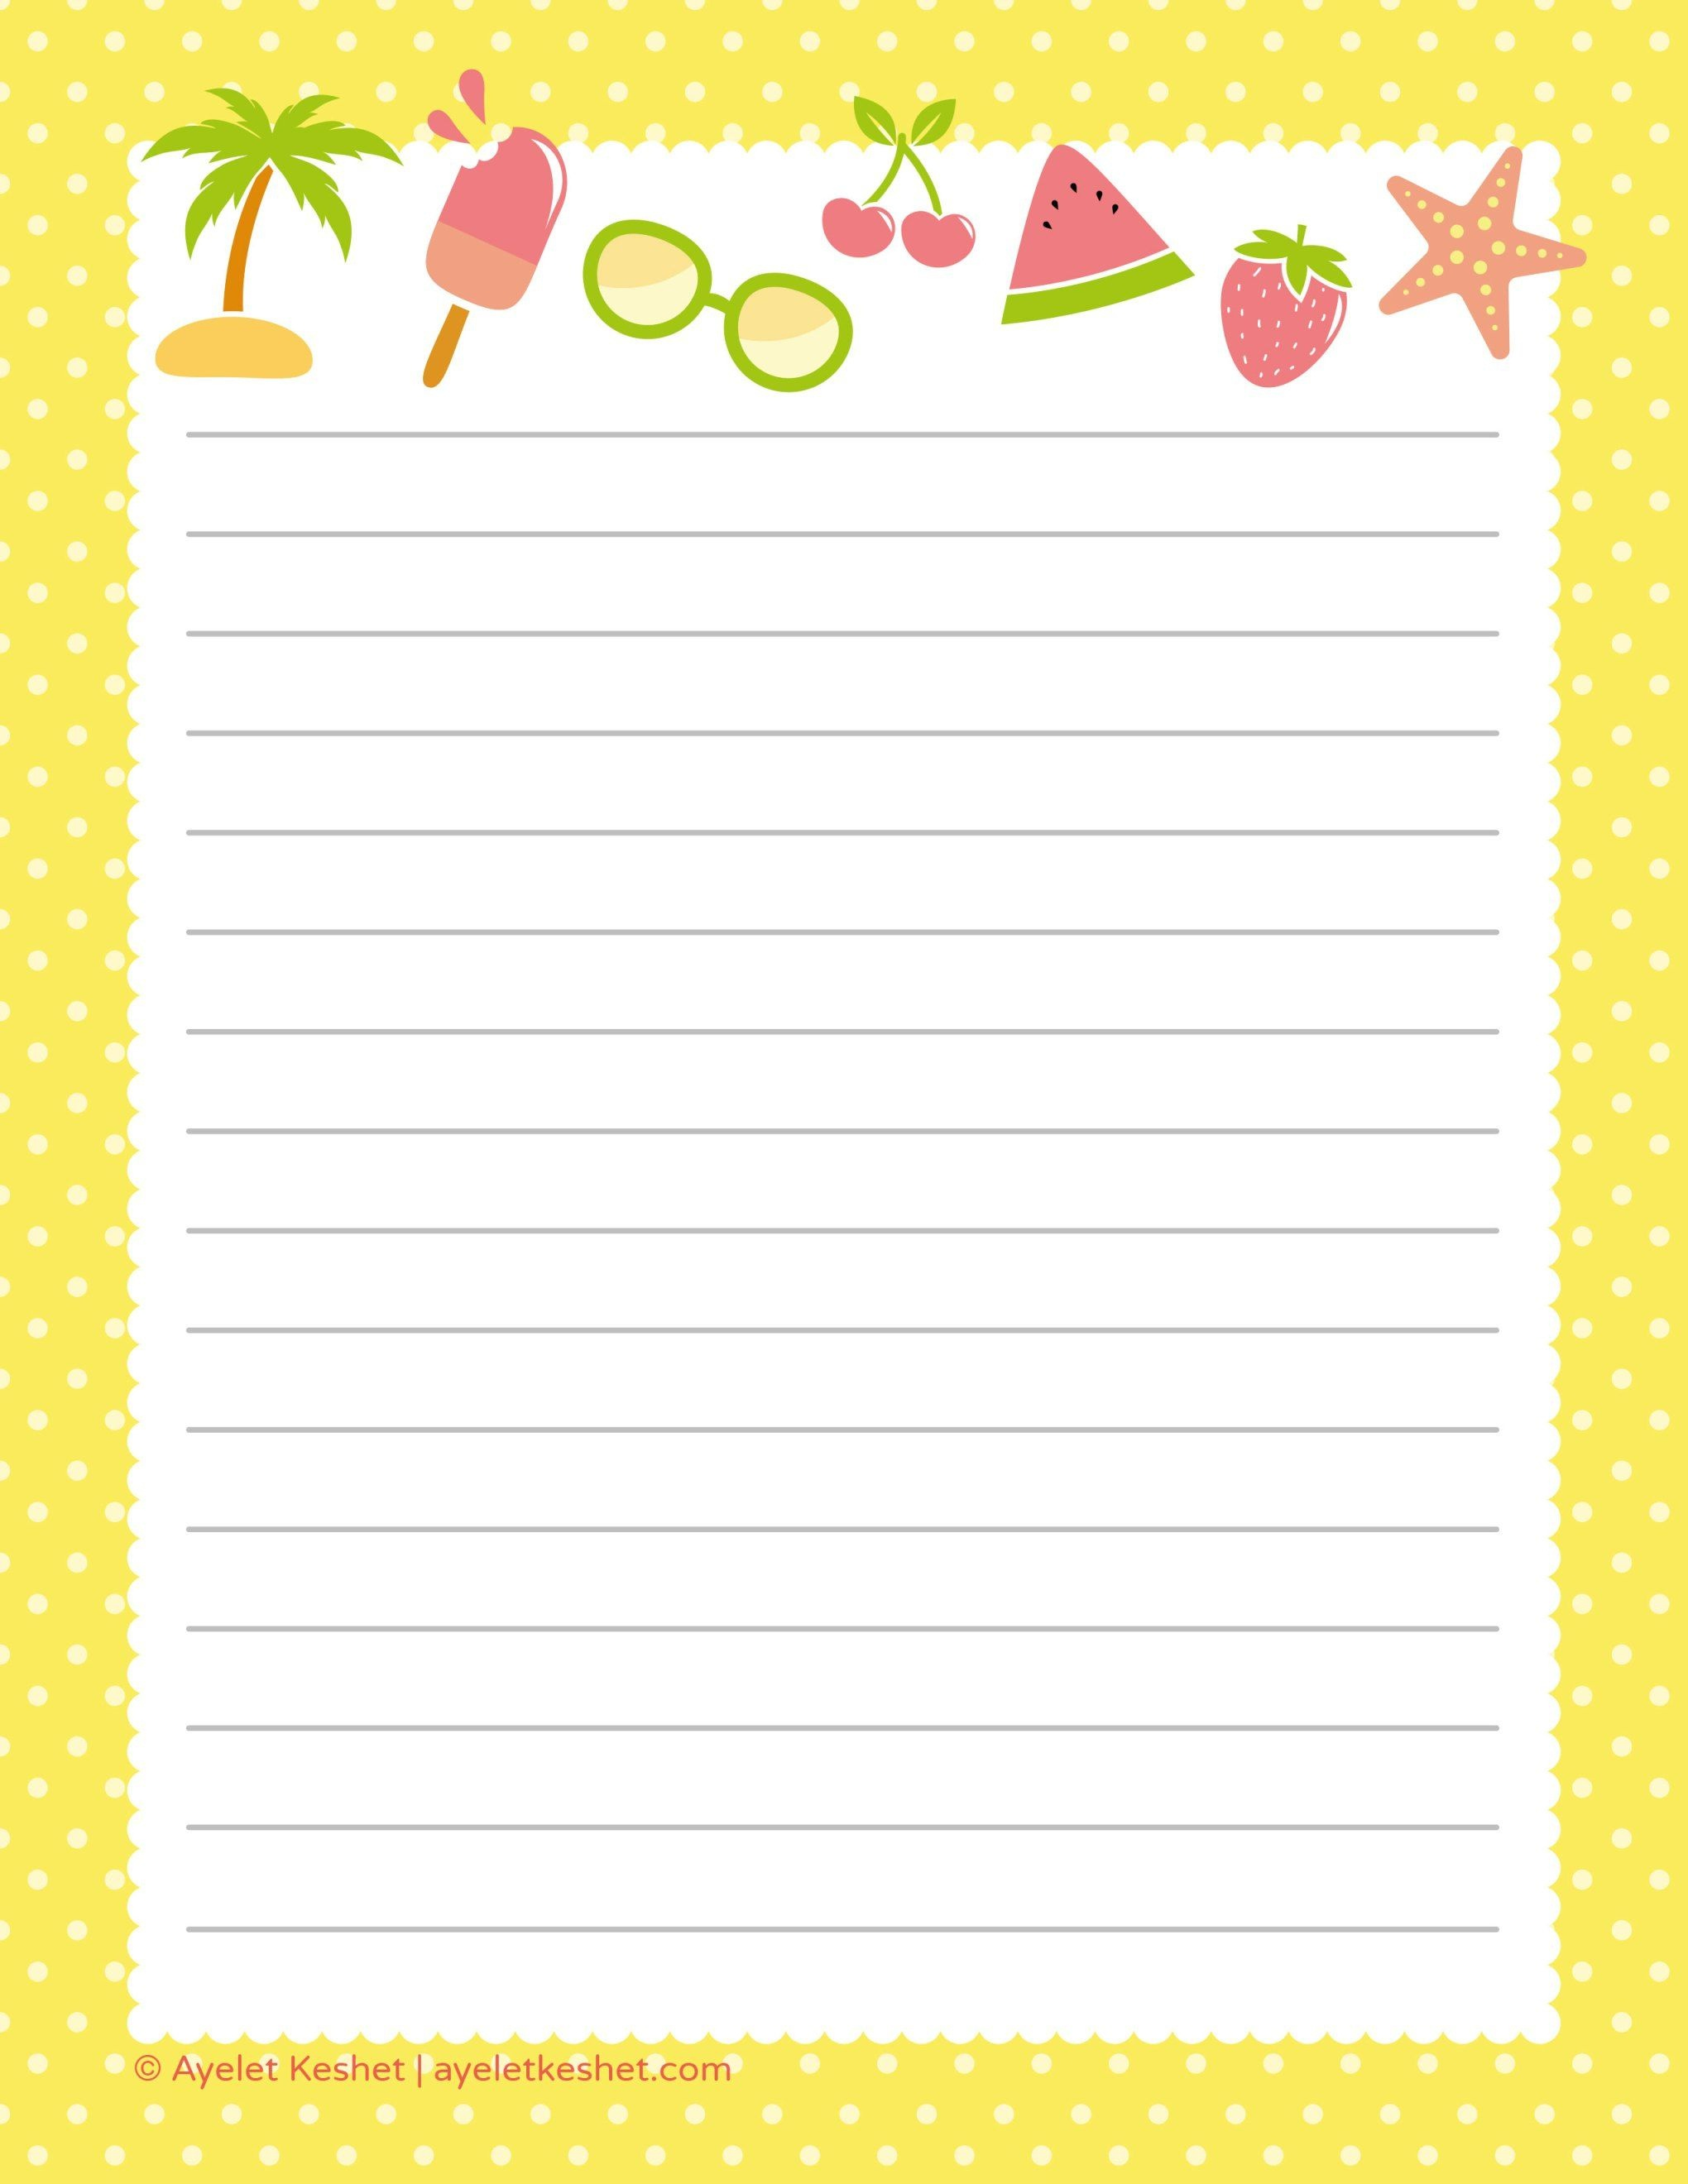 Free Printable Letter Paper | Printables To Go | Free Printable - Free Printable Writing Paper For Adults